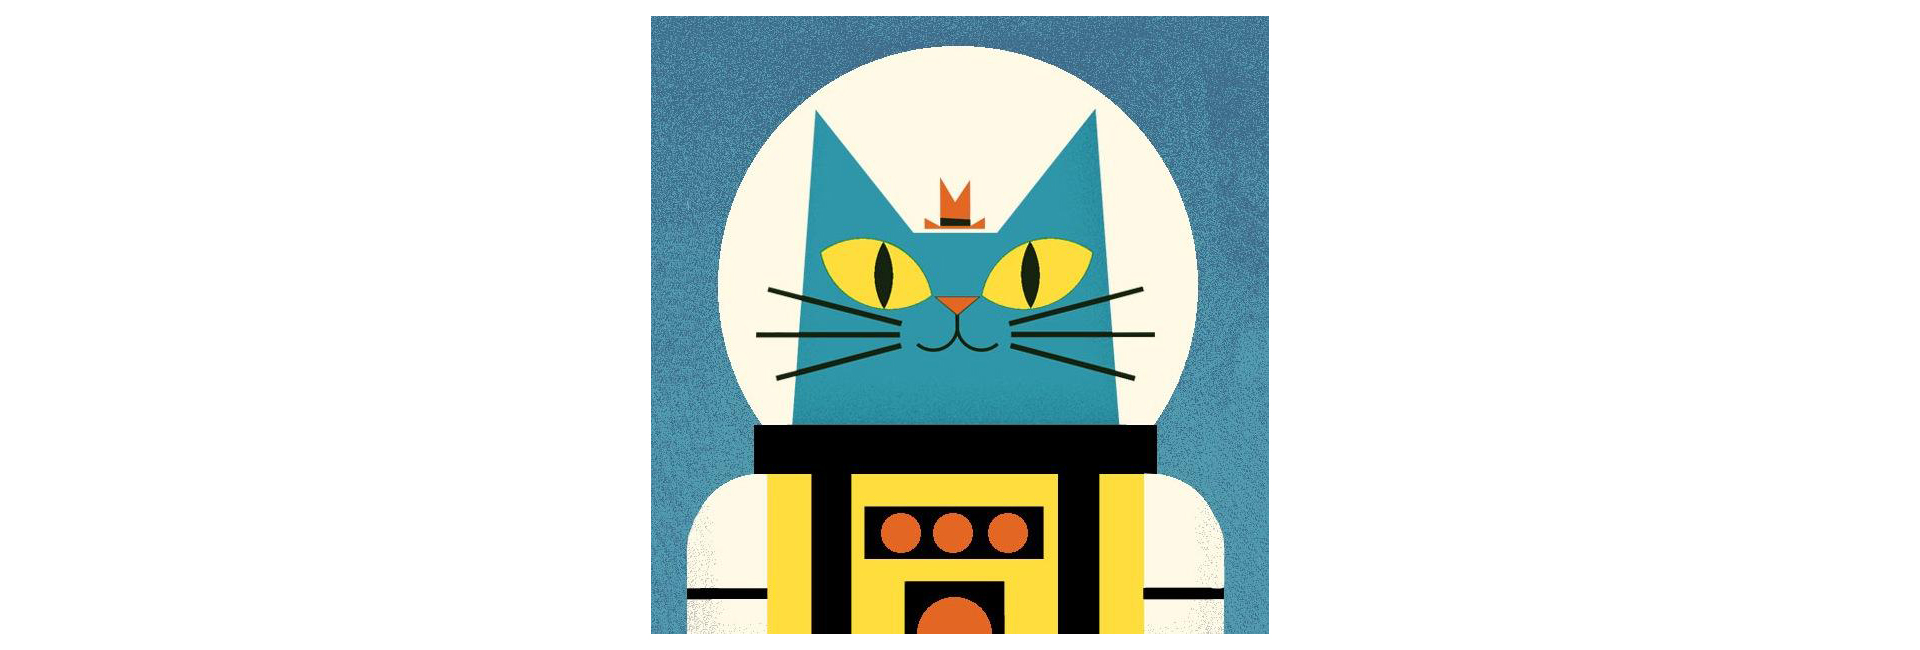 Professor Astro Cat Twitter Icon